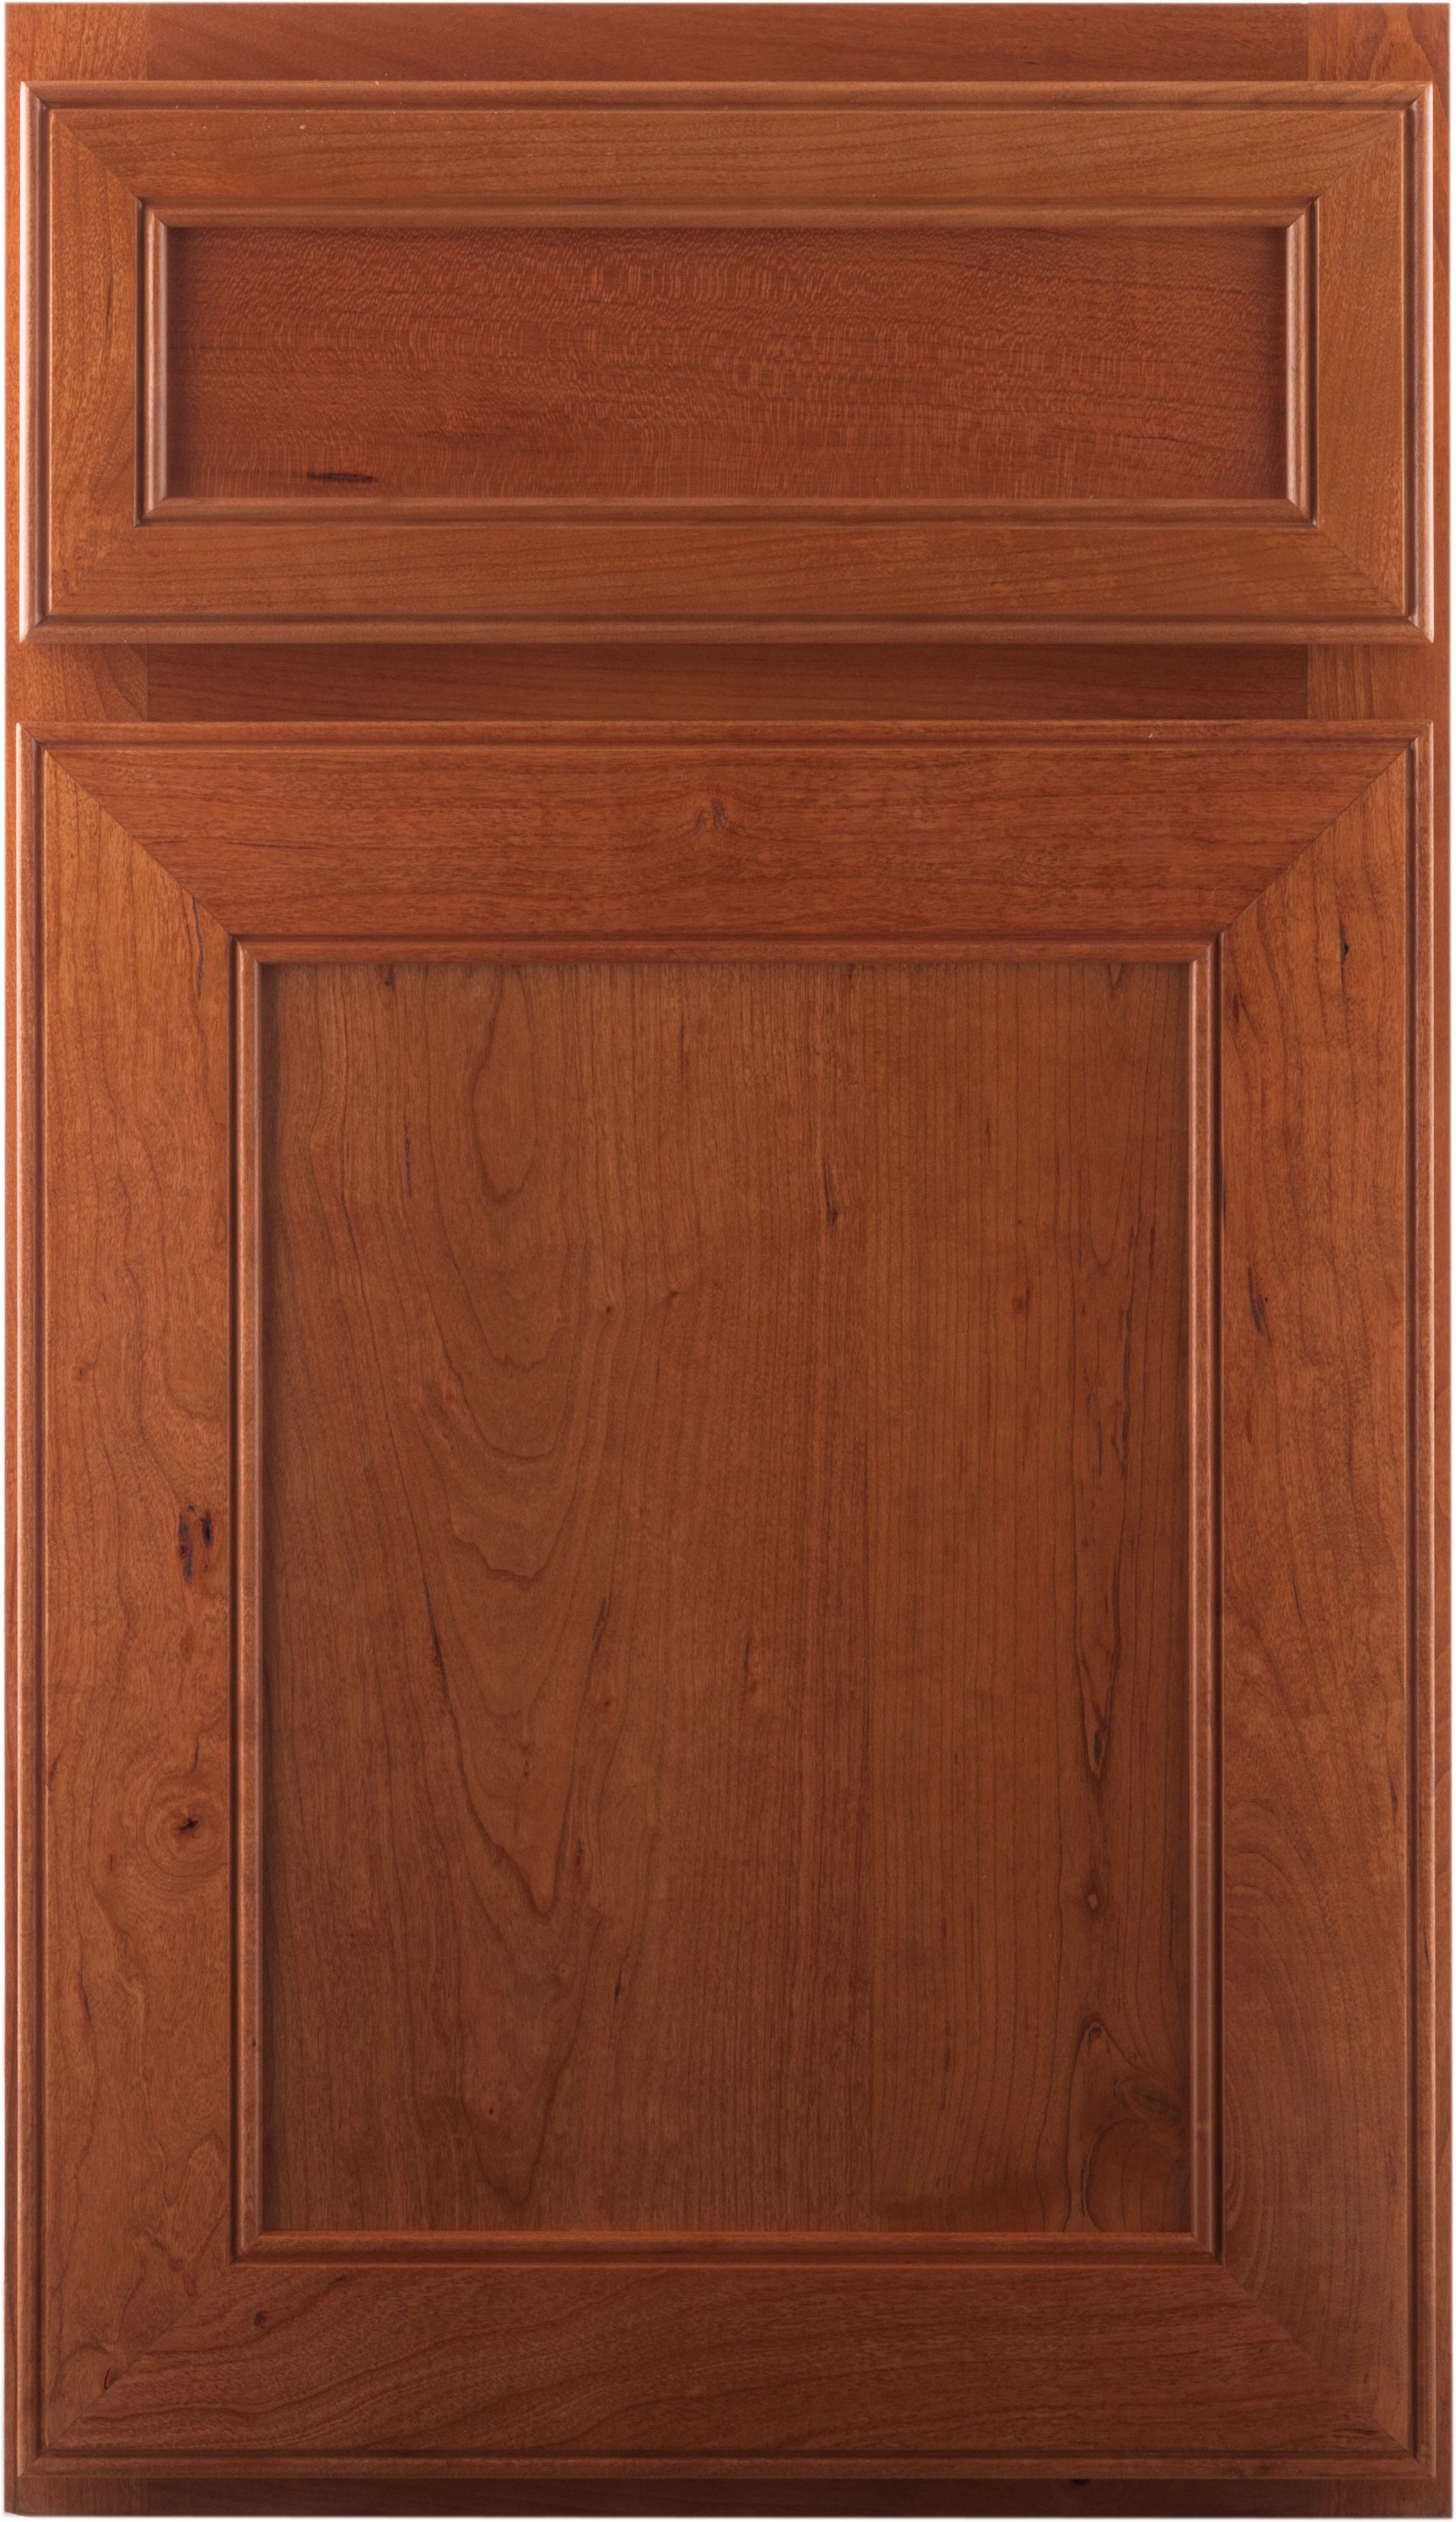 Cherry Kitchen Cabinet Doors Crown Cabinets Milan Knotty Cherry Wheat Crown Cabinets